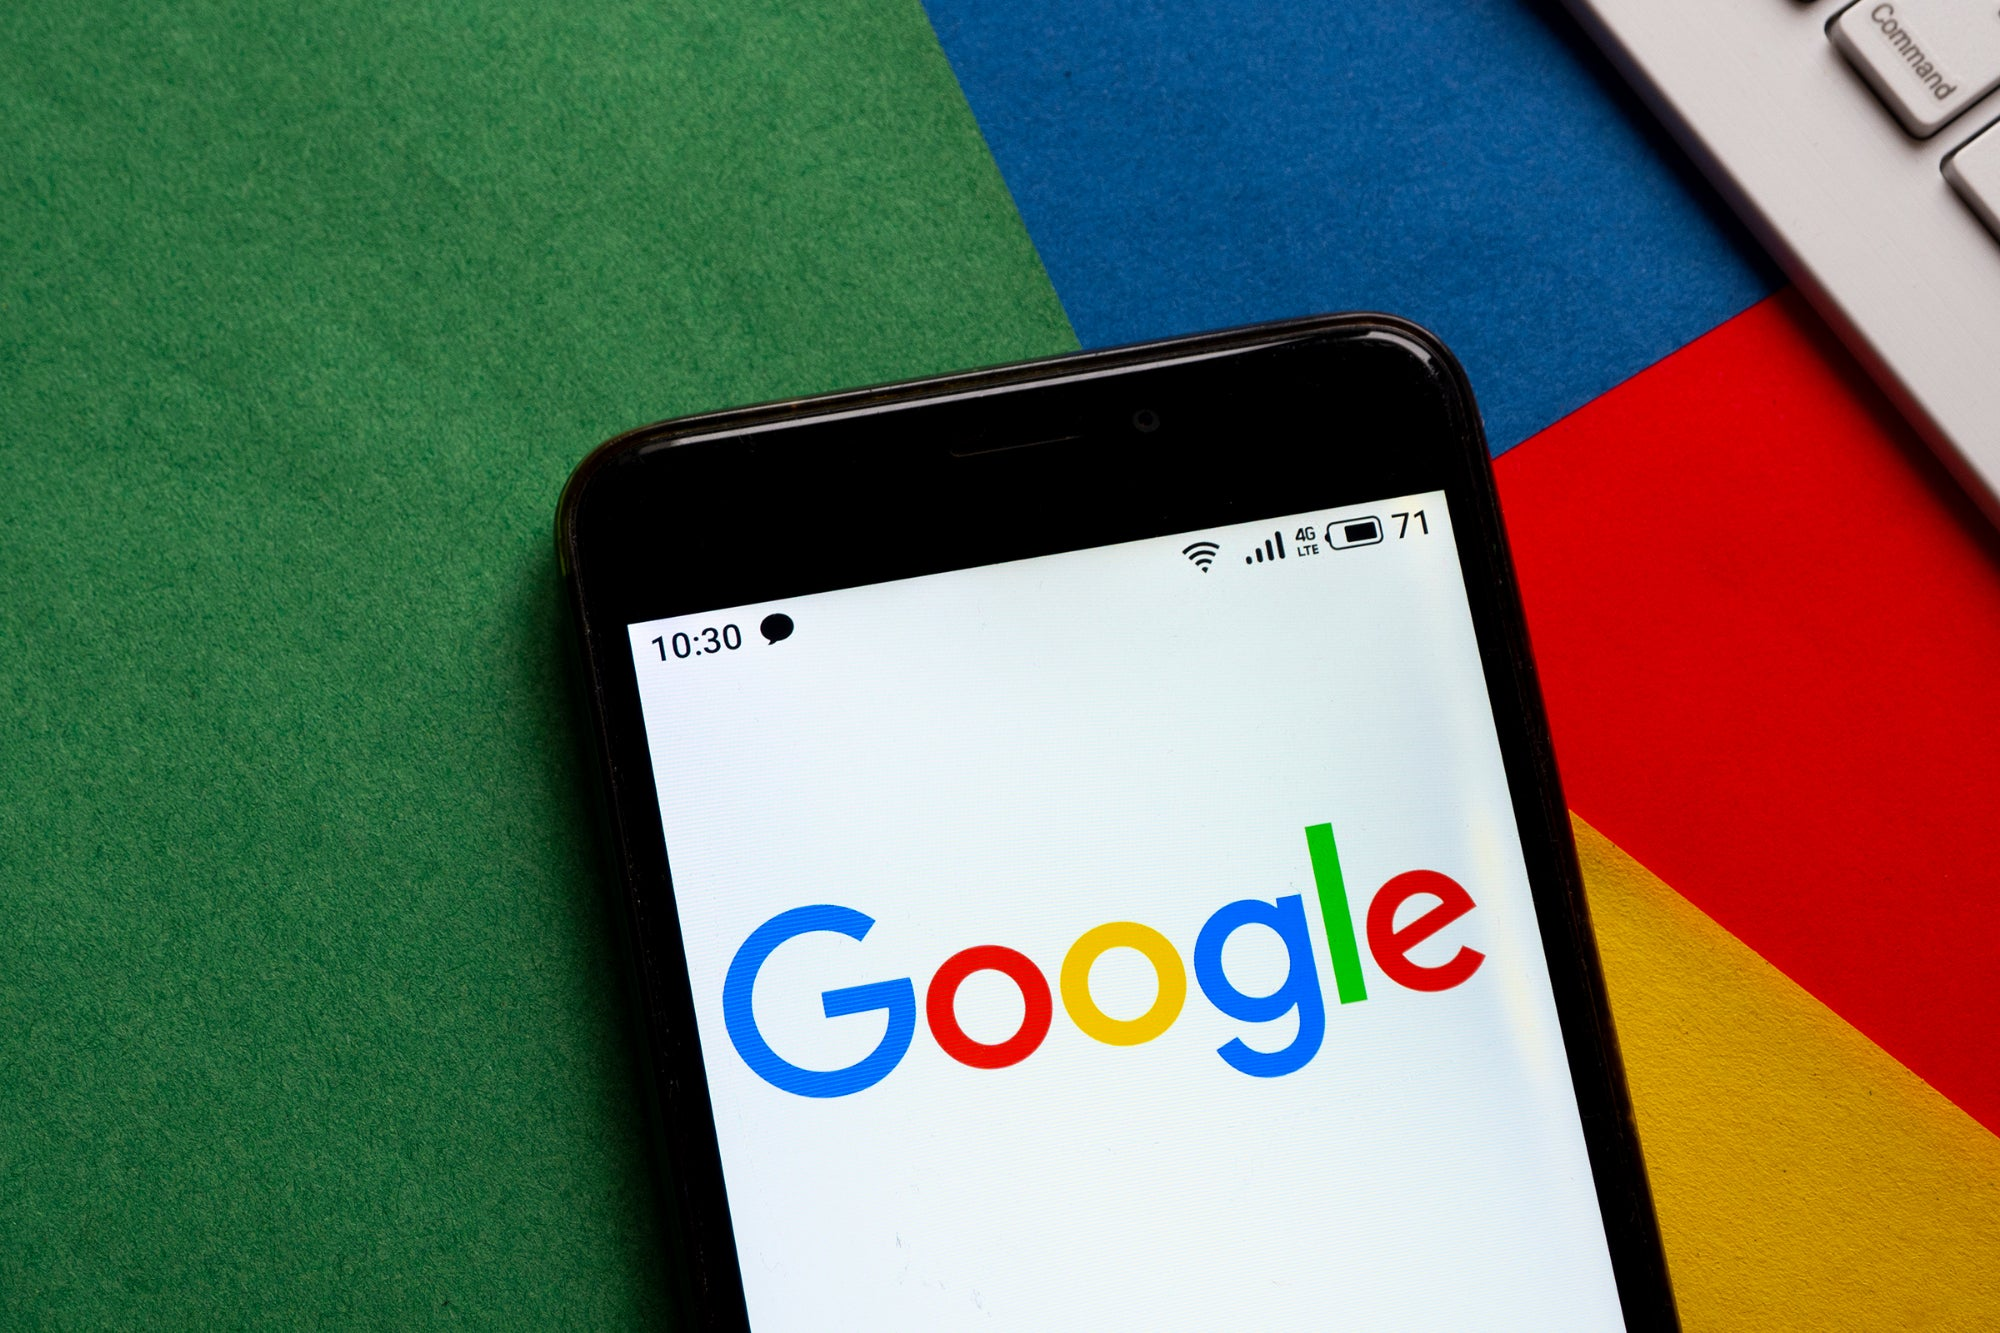 Internet marketing 6 Tips for Acquiring More Google Reviews (and Why They Matter)